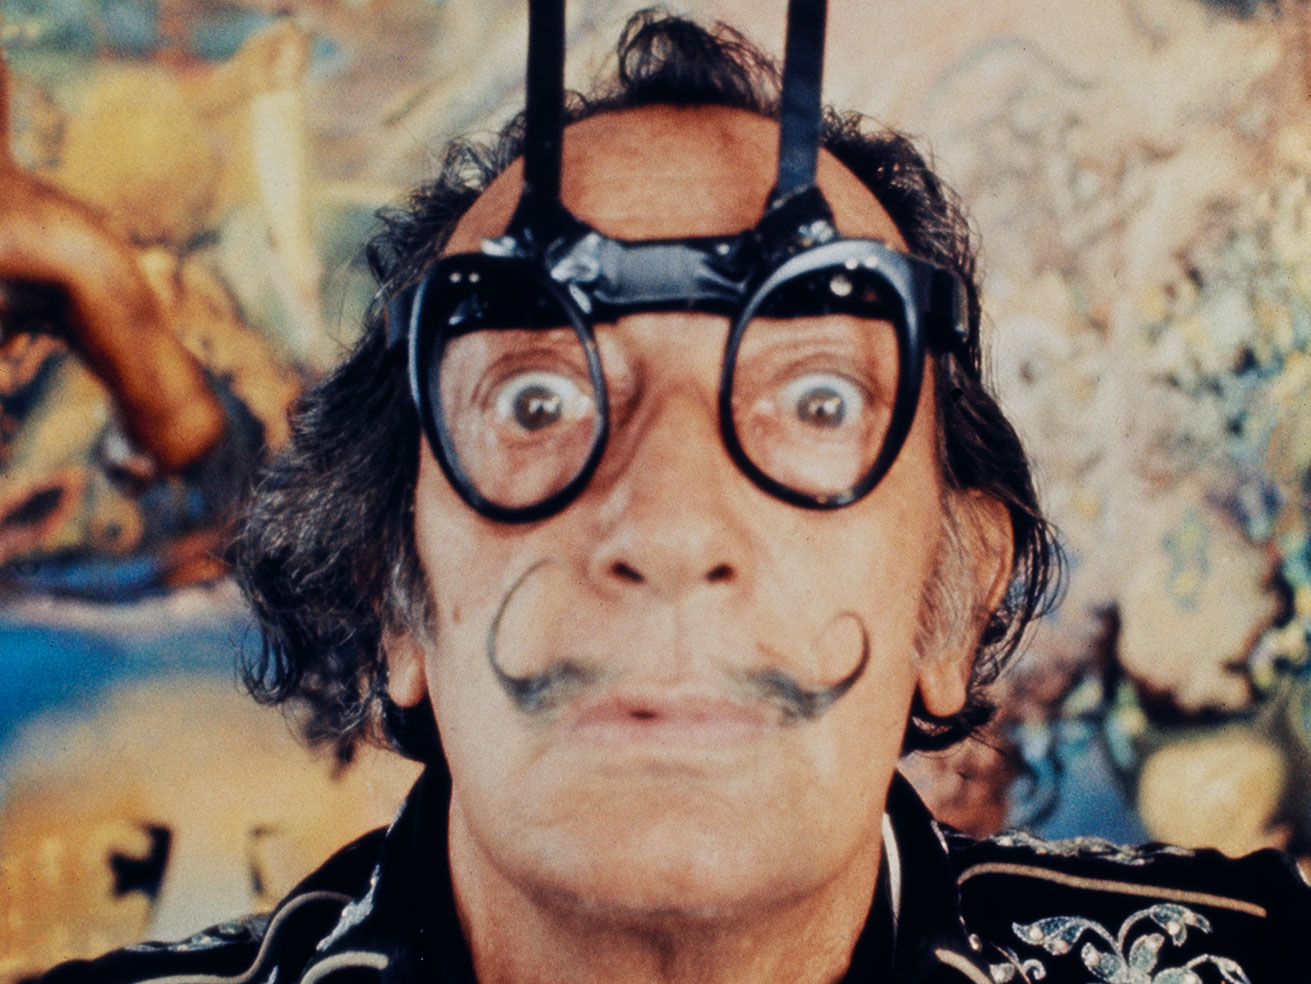 a picture of Salvador Dalí by Robert Whitaker